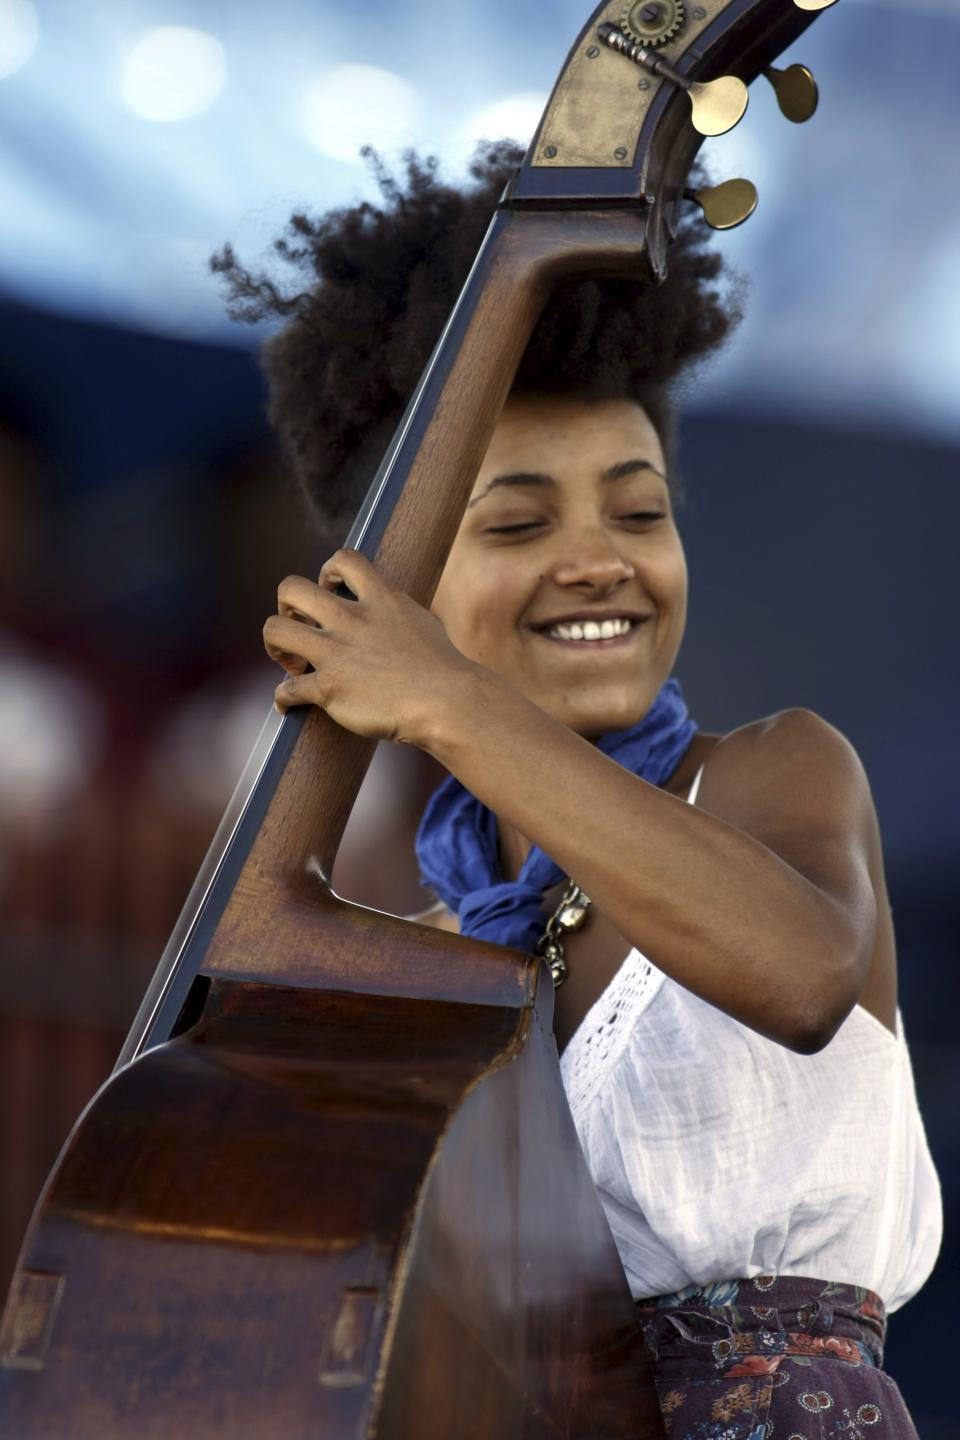 File - In this Aug. 8, 2009 file photo, Esperanza Spalding performs at George Wein's Carefusion Jazz Festival 55 in Newport, R.I. Spalding is among the featured artists returning to the festival on Sunday, Aug. 7, 2011. (AP Photo/Joe Giblin, File)